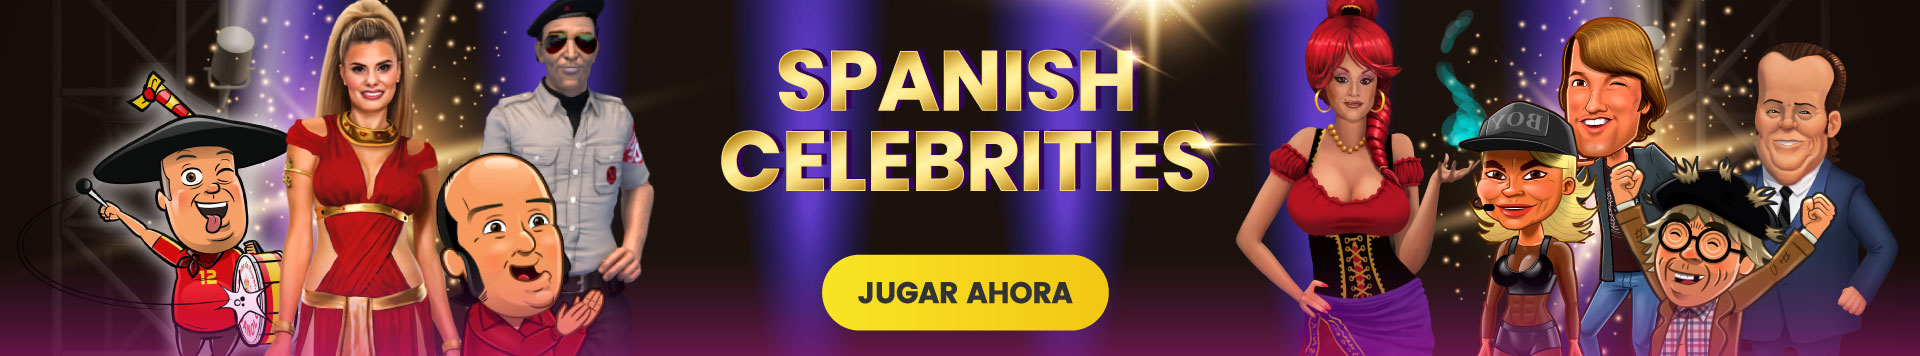 MGA - Spanish Celebrities PRE